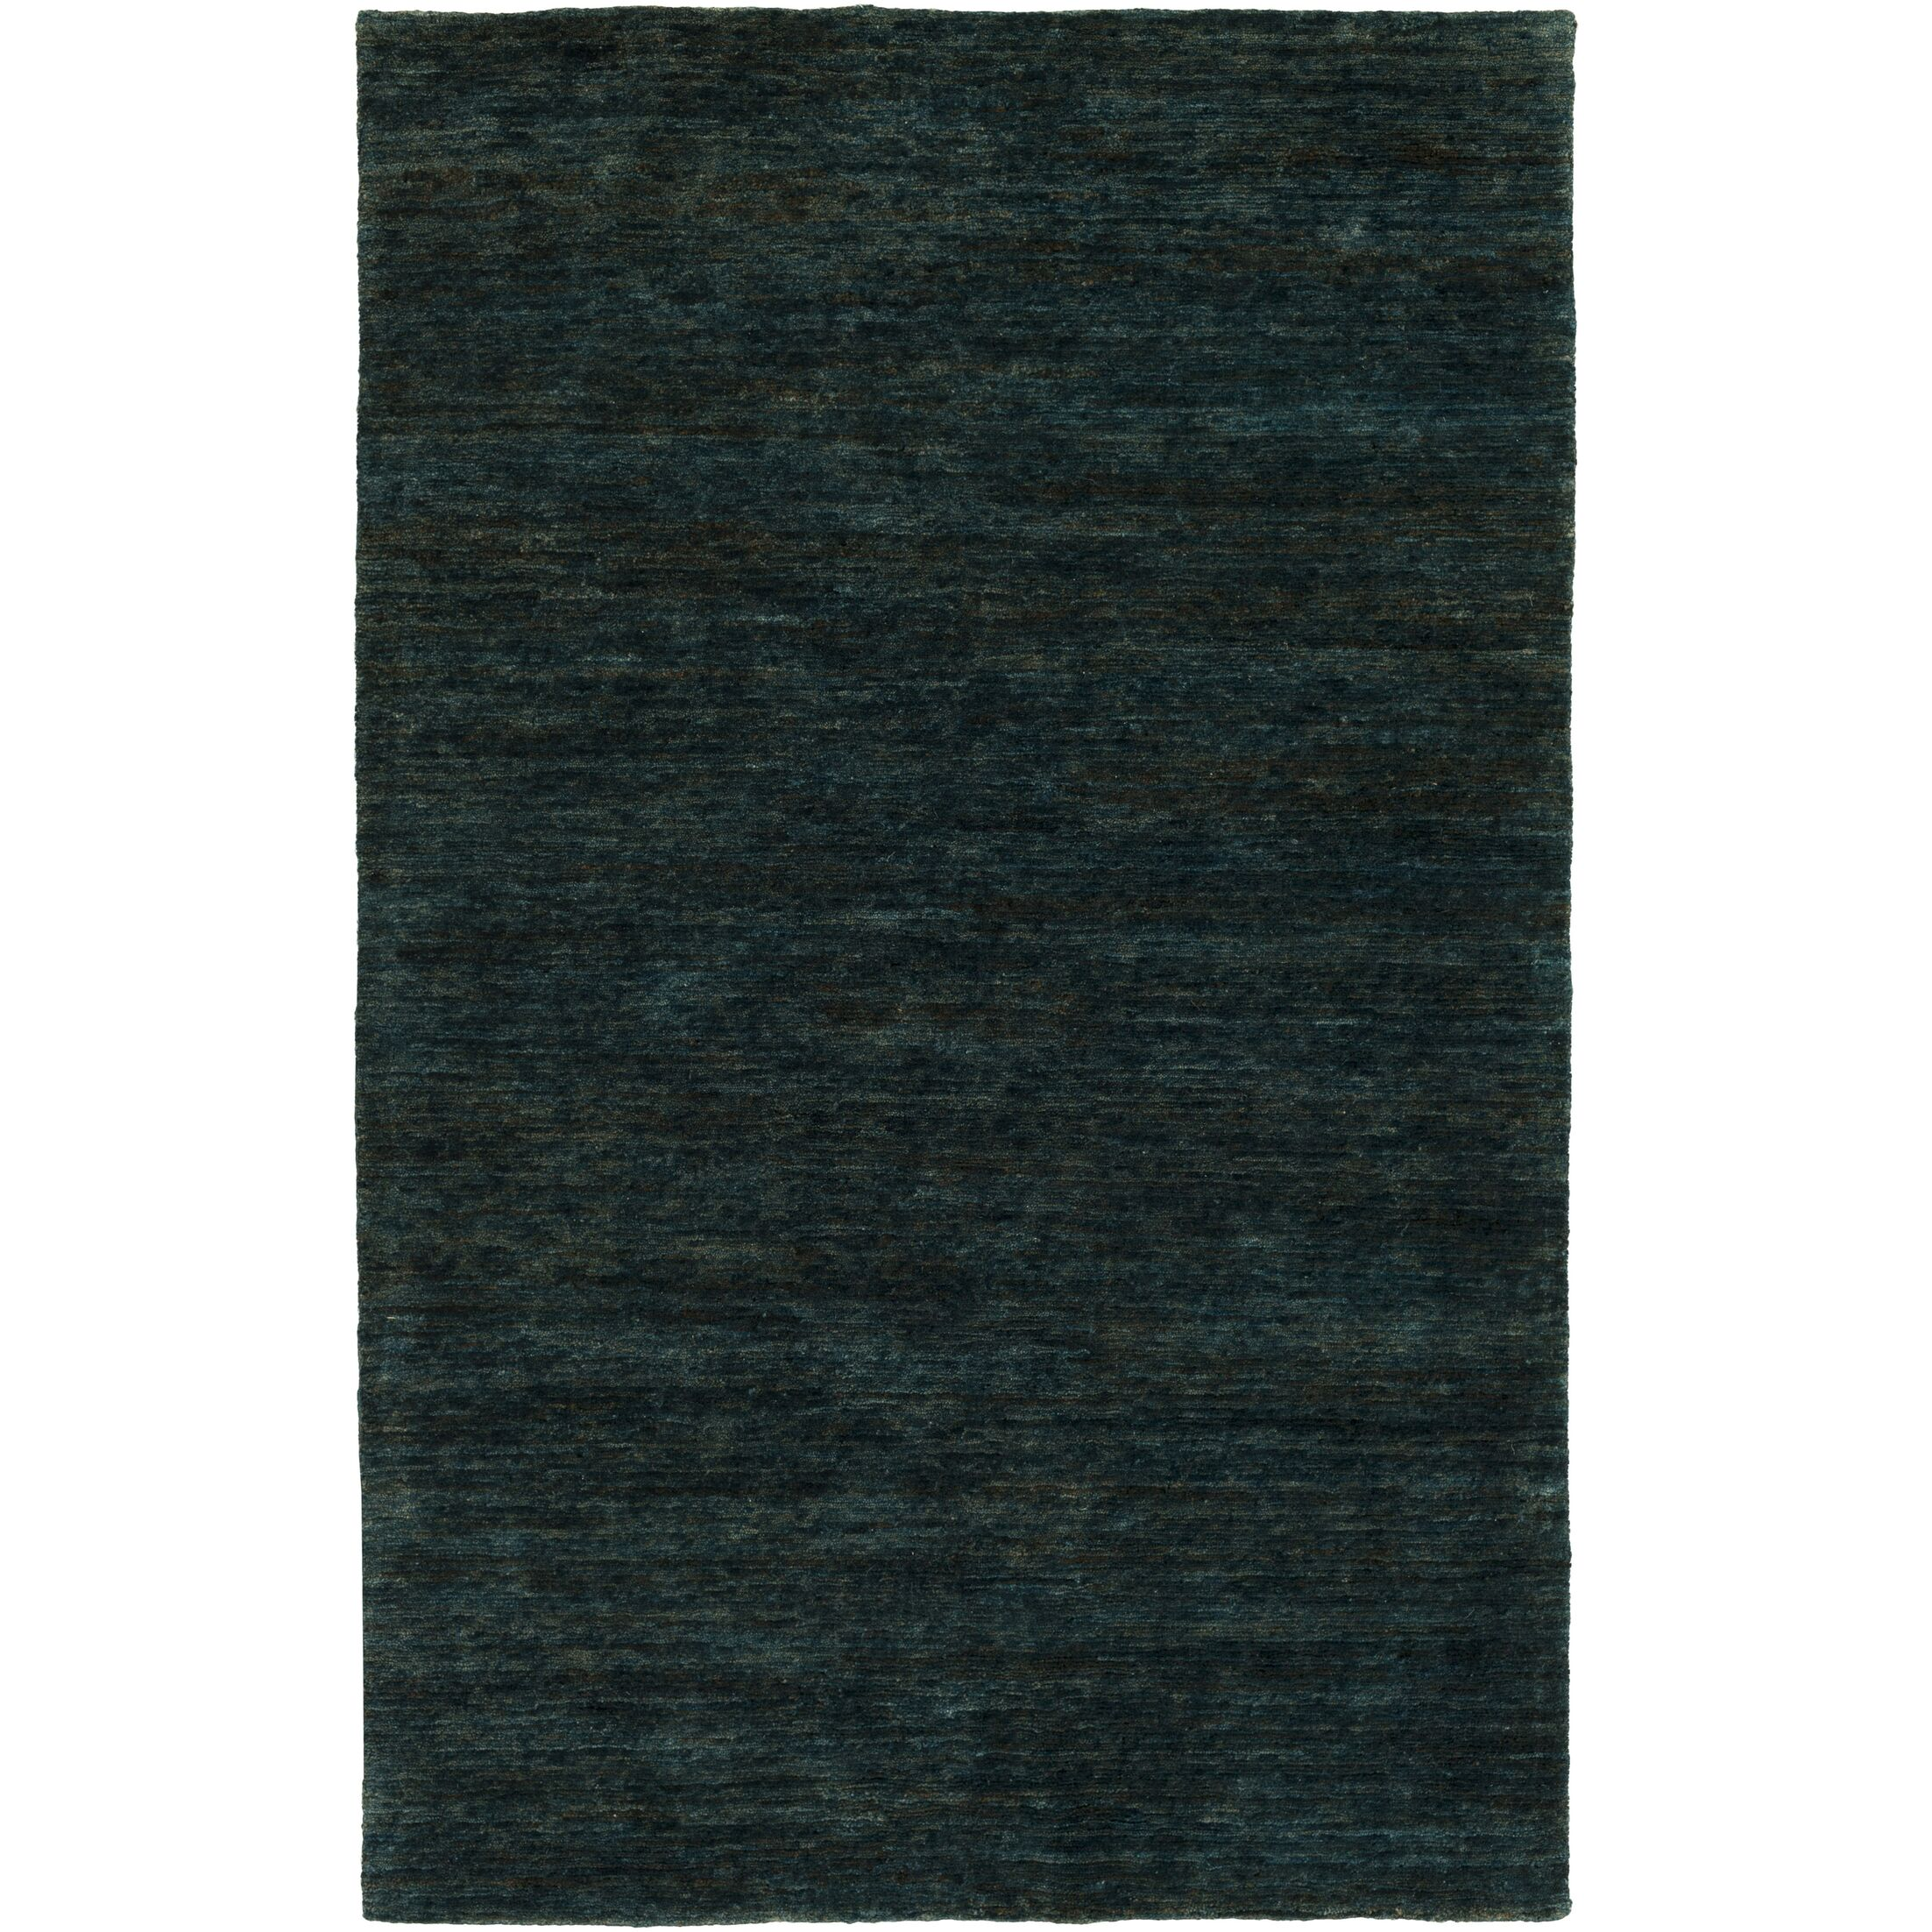 Nondoue Hand-Knotted Dark Green Area Rug Rug Size: Rectangle 3'3